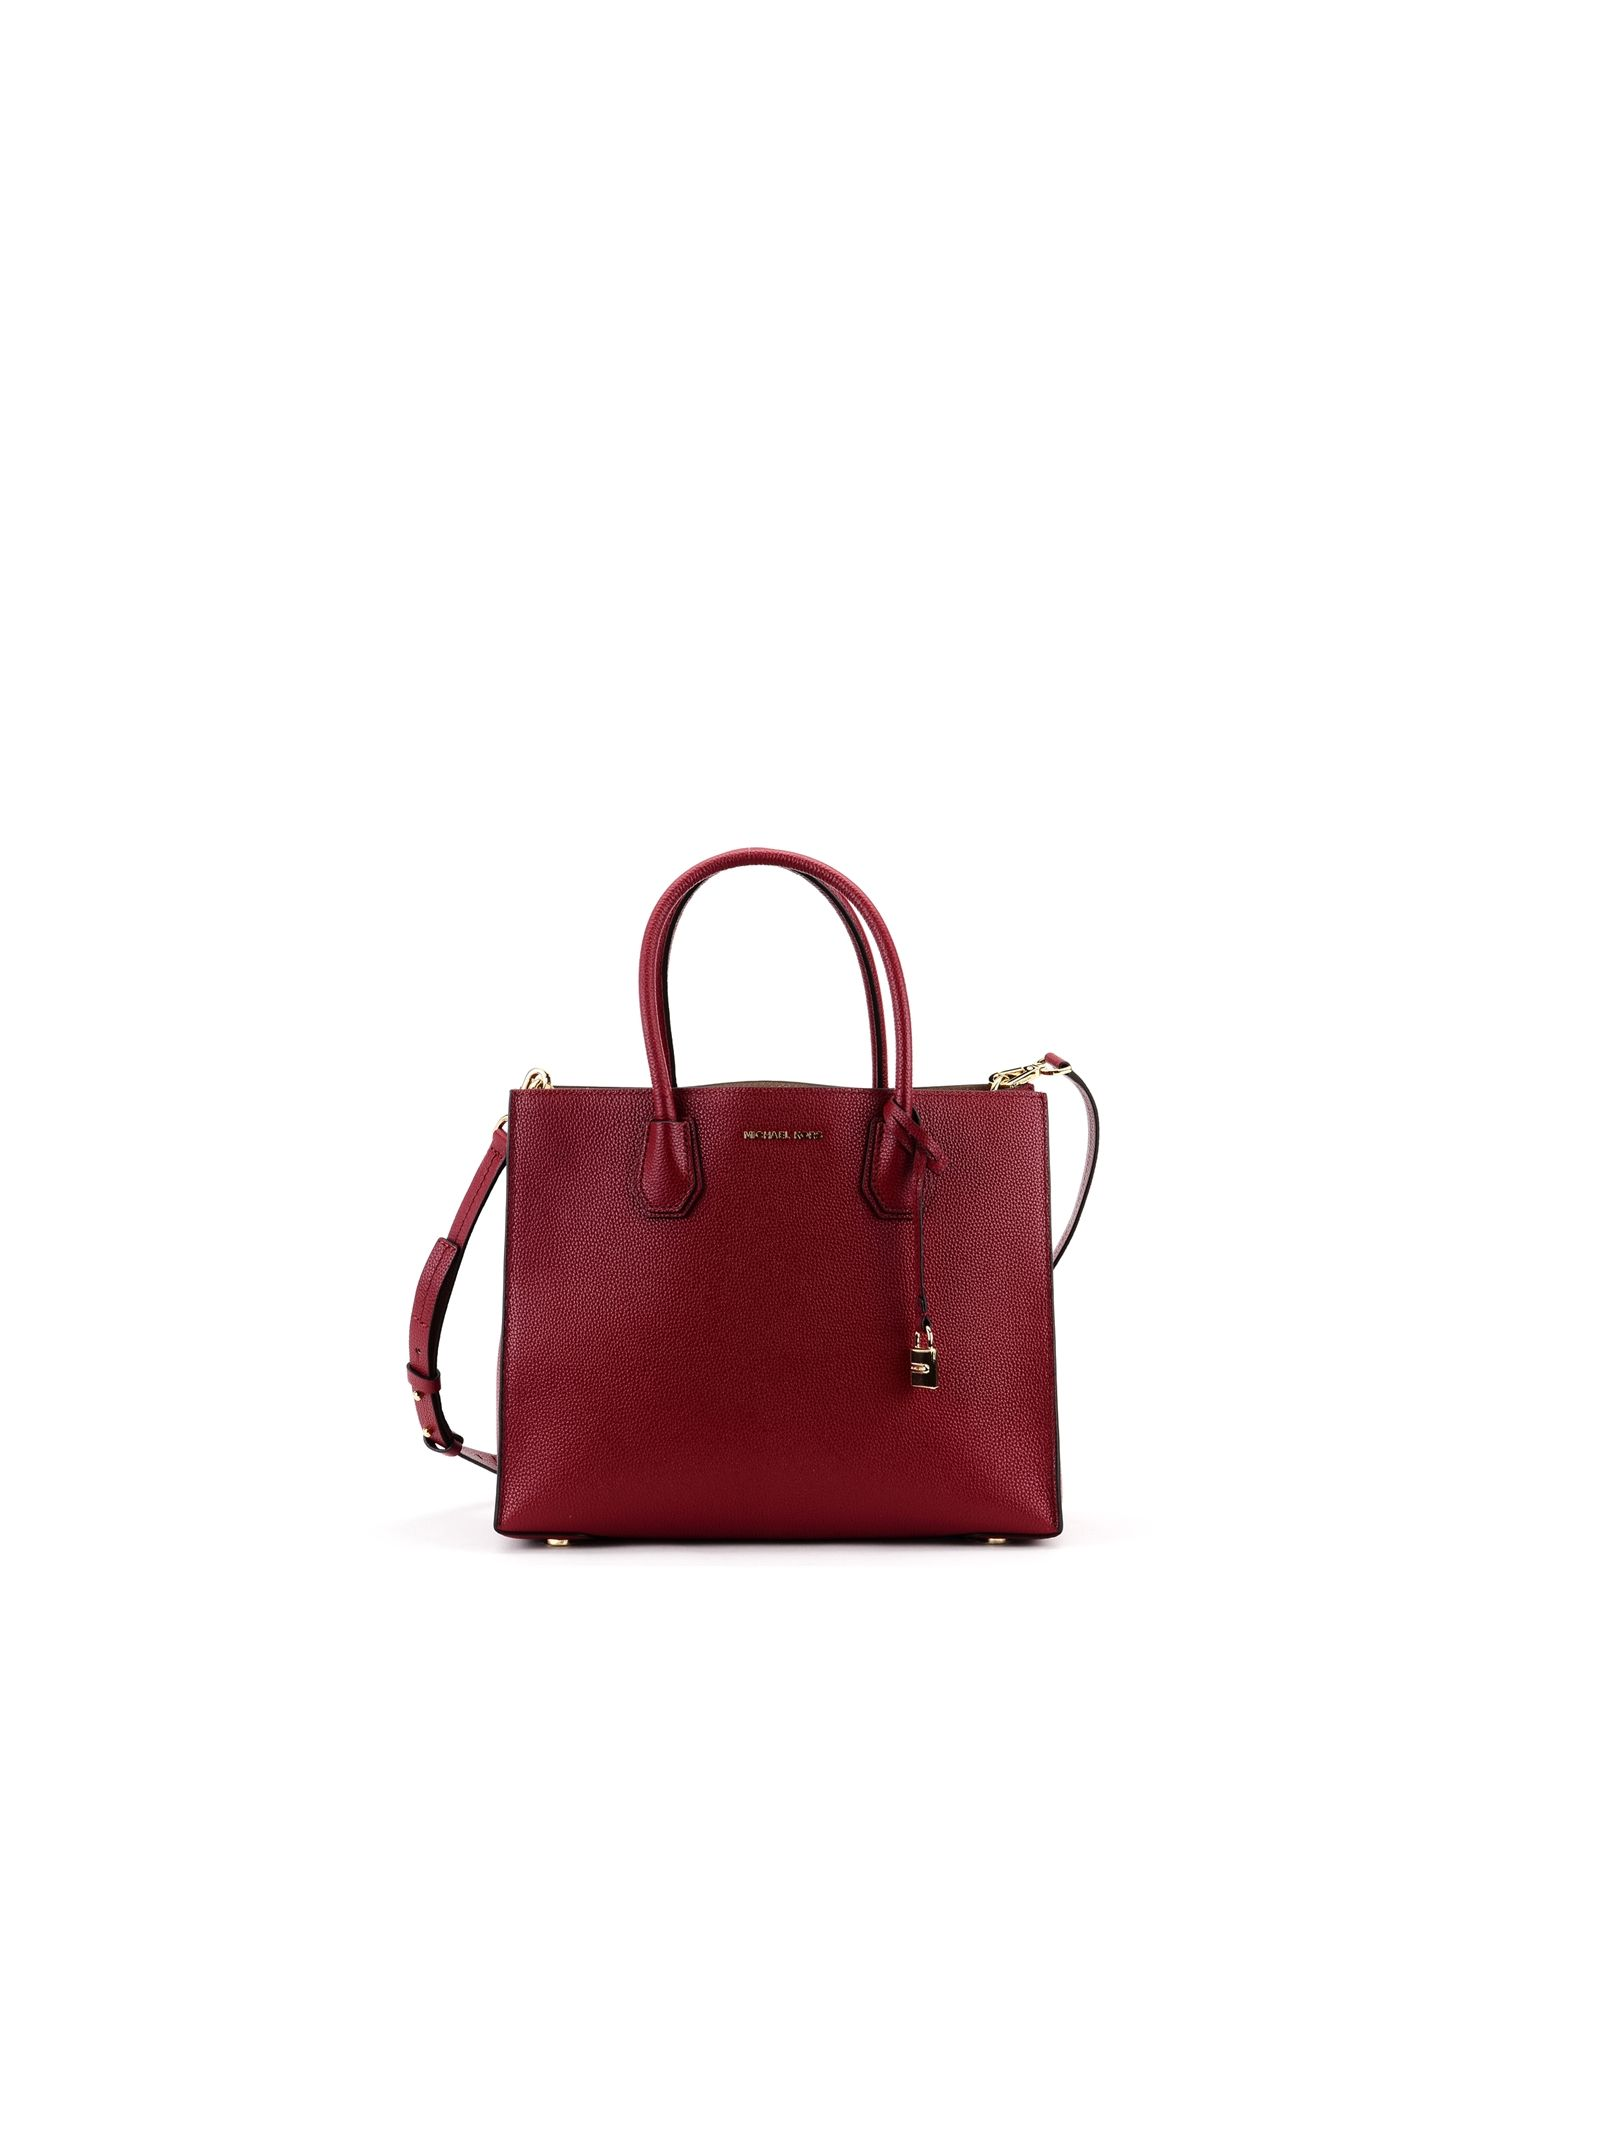 michael kors female cherry mercer large tote